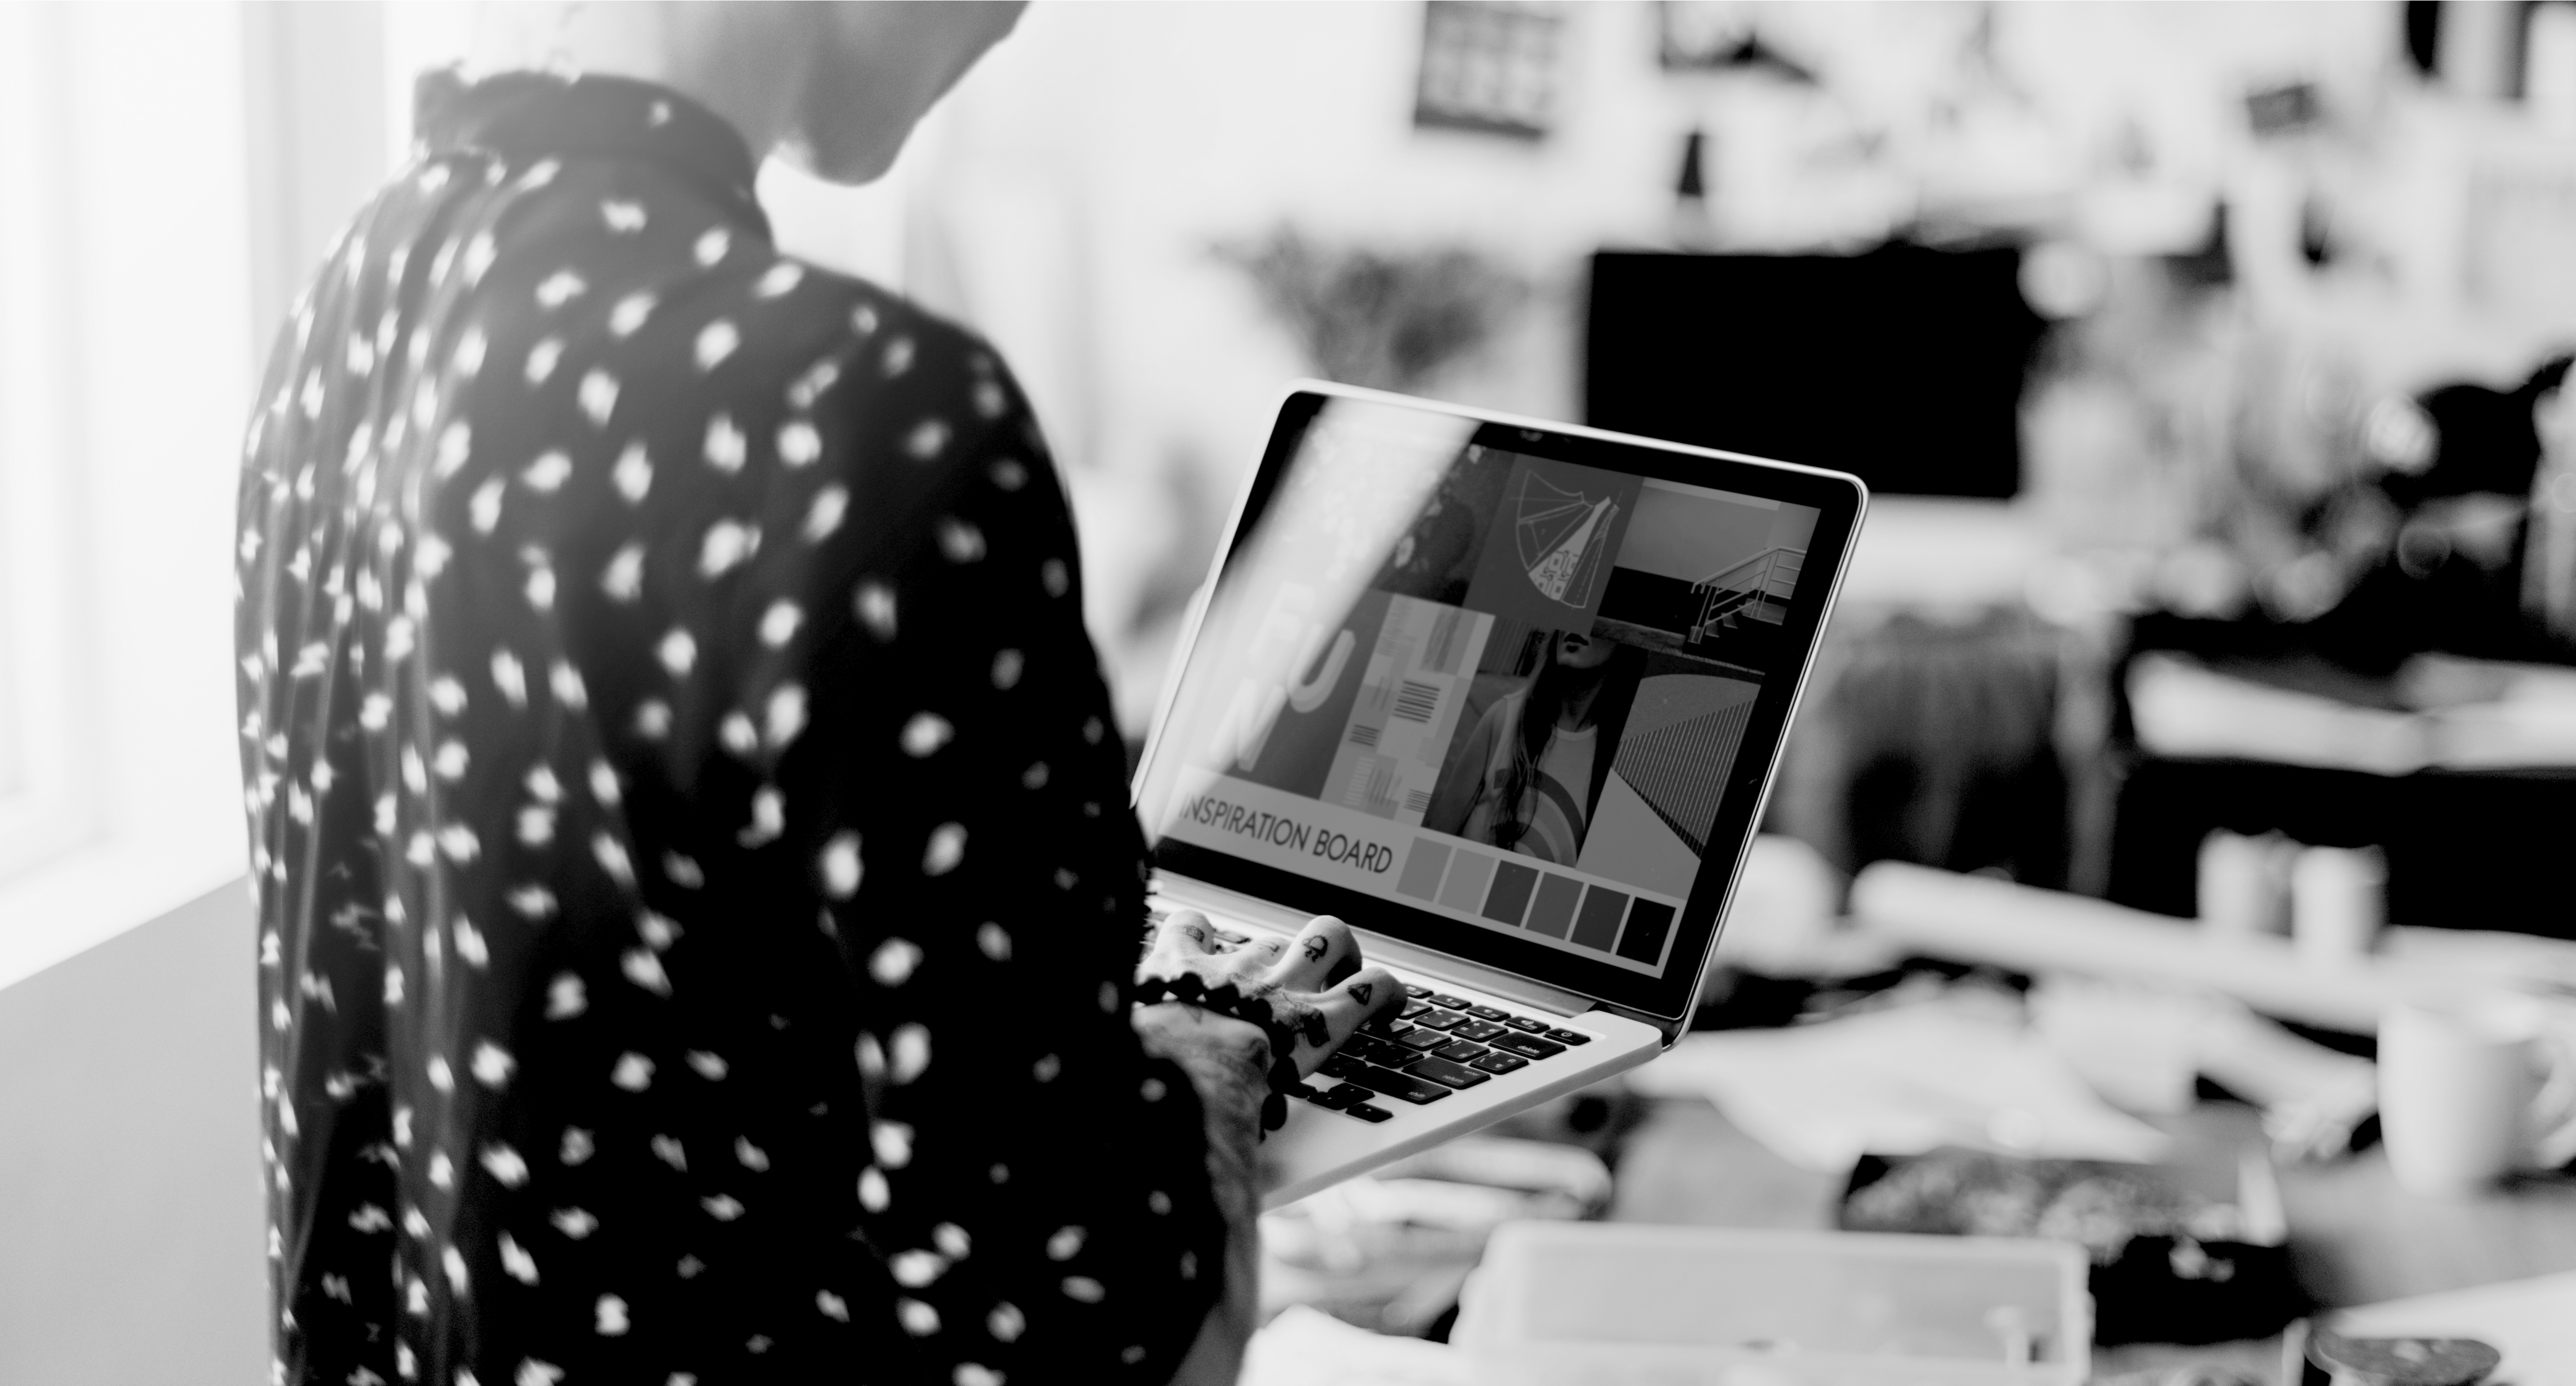 Web designer standing in office with laptop in hand